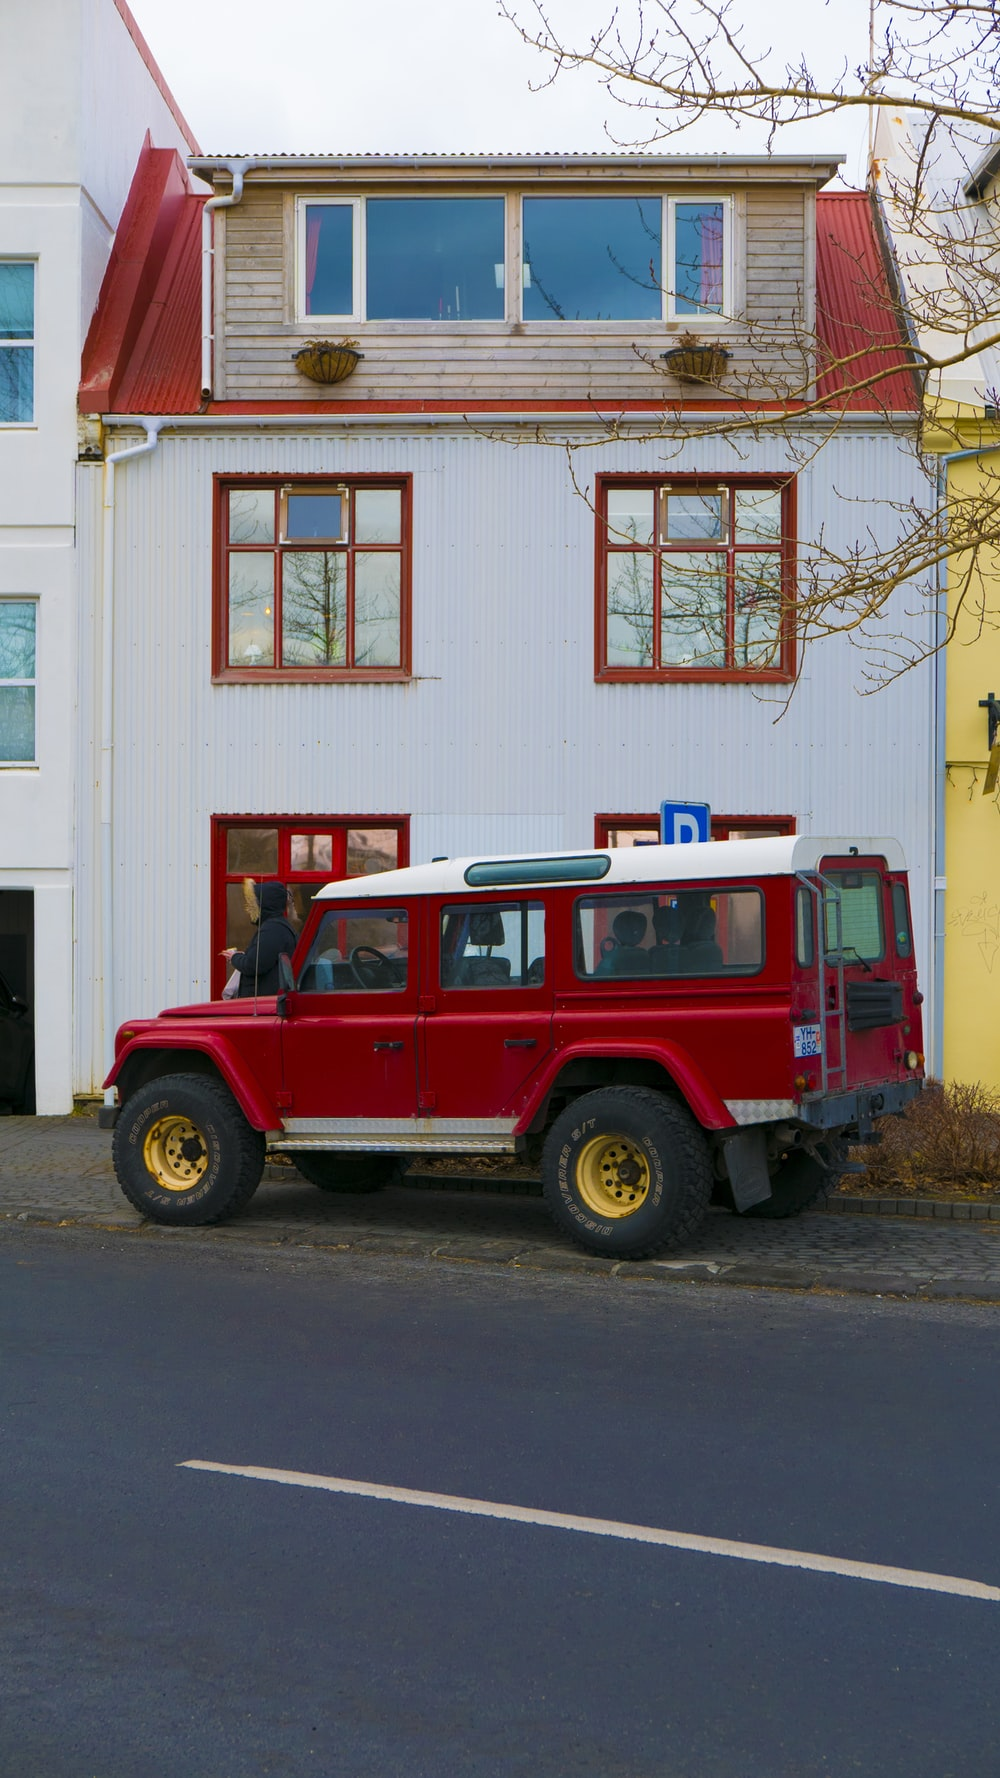 red vehicle beside house